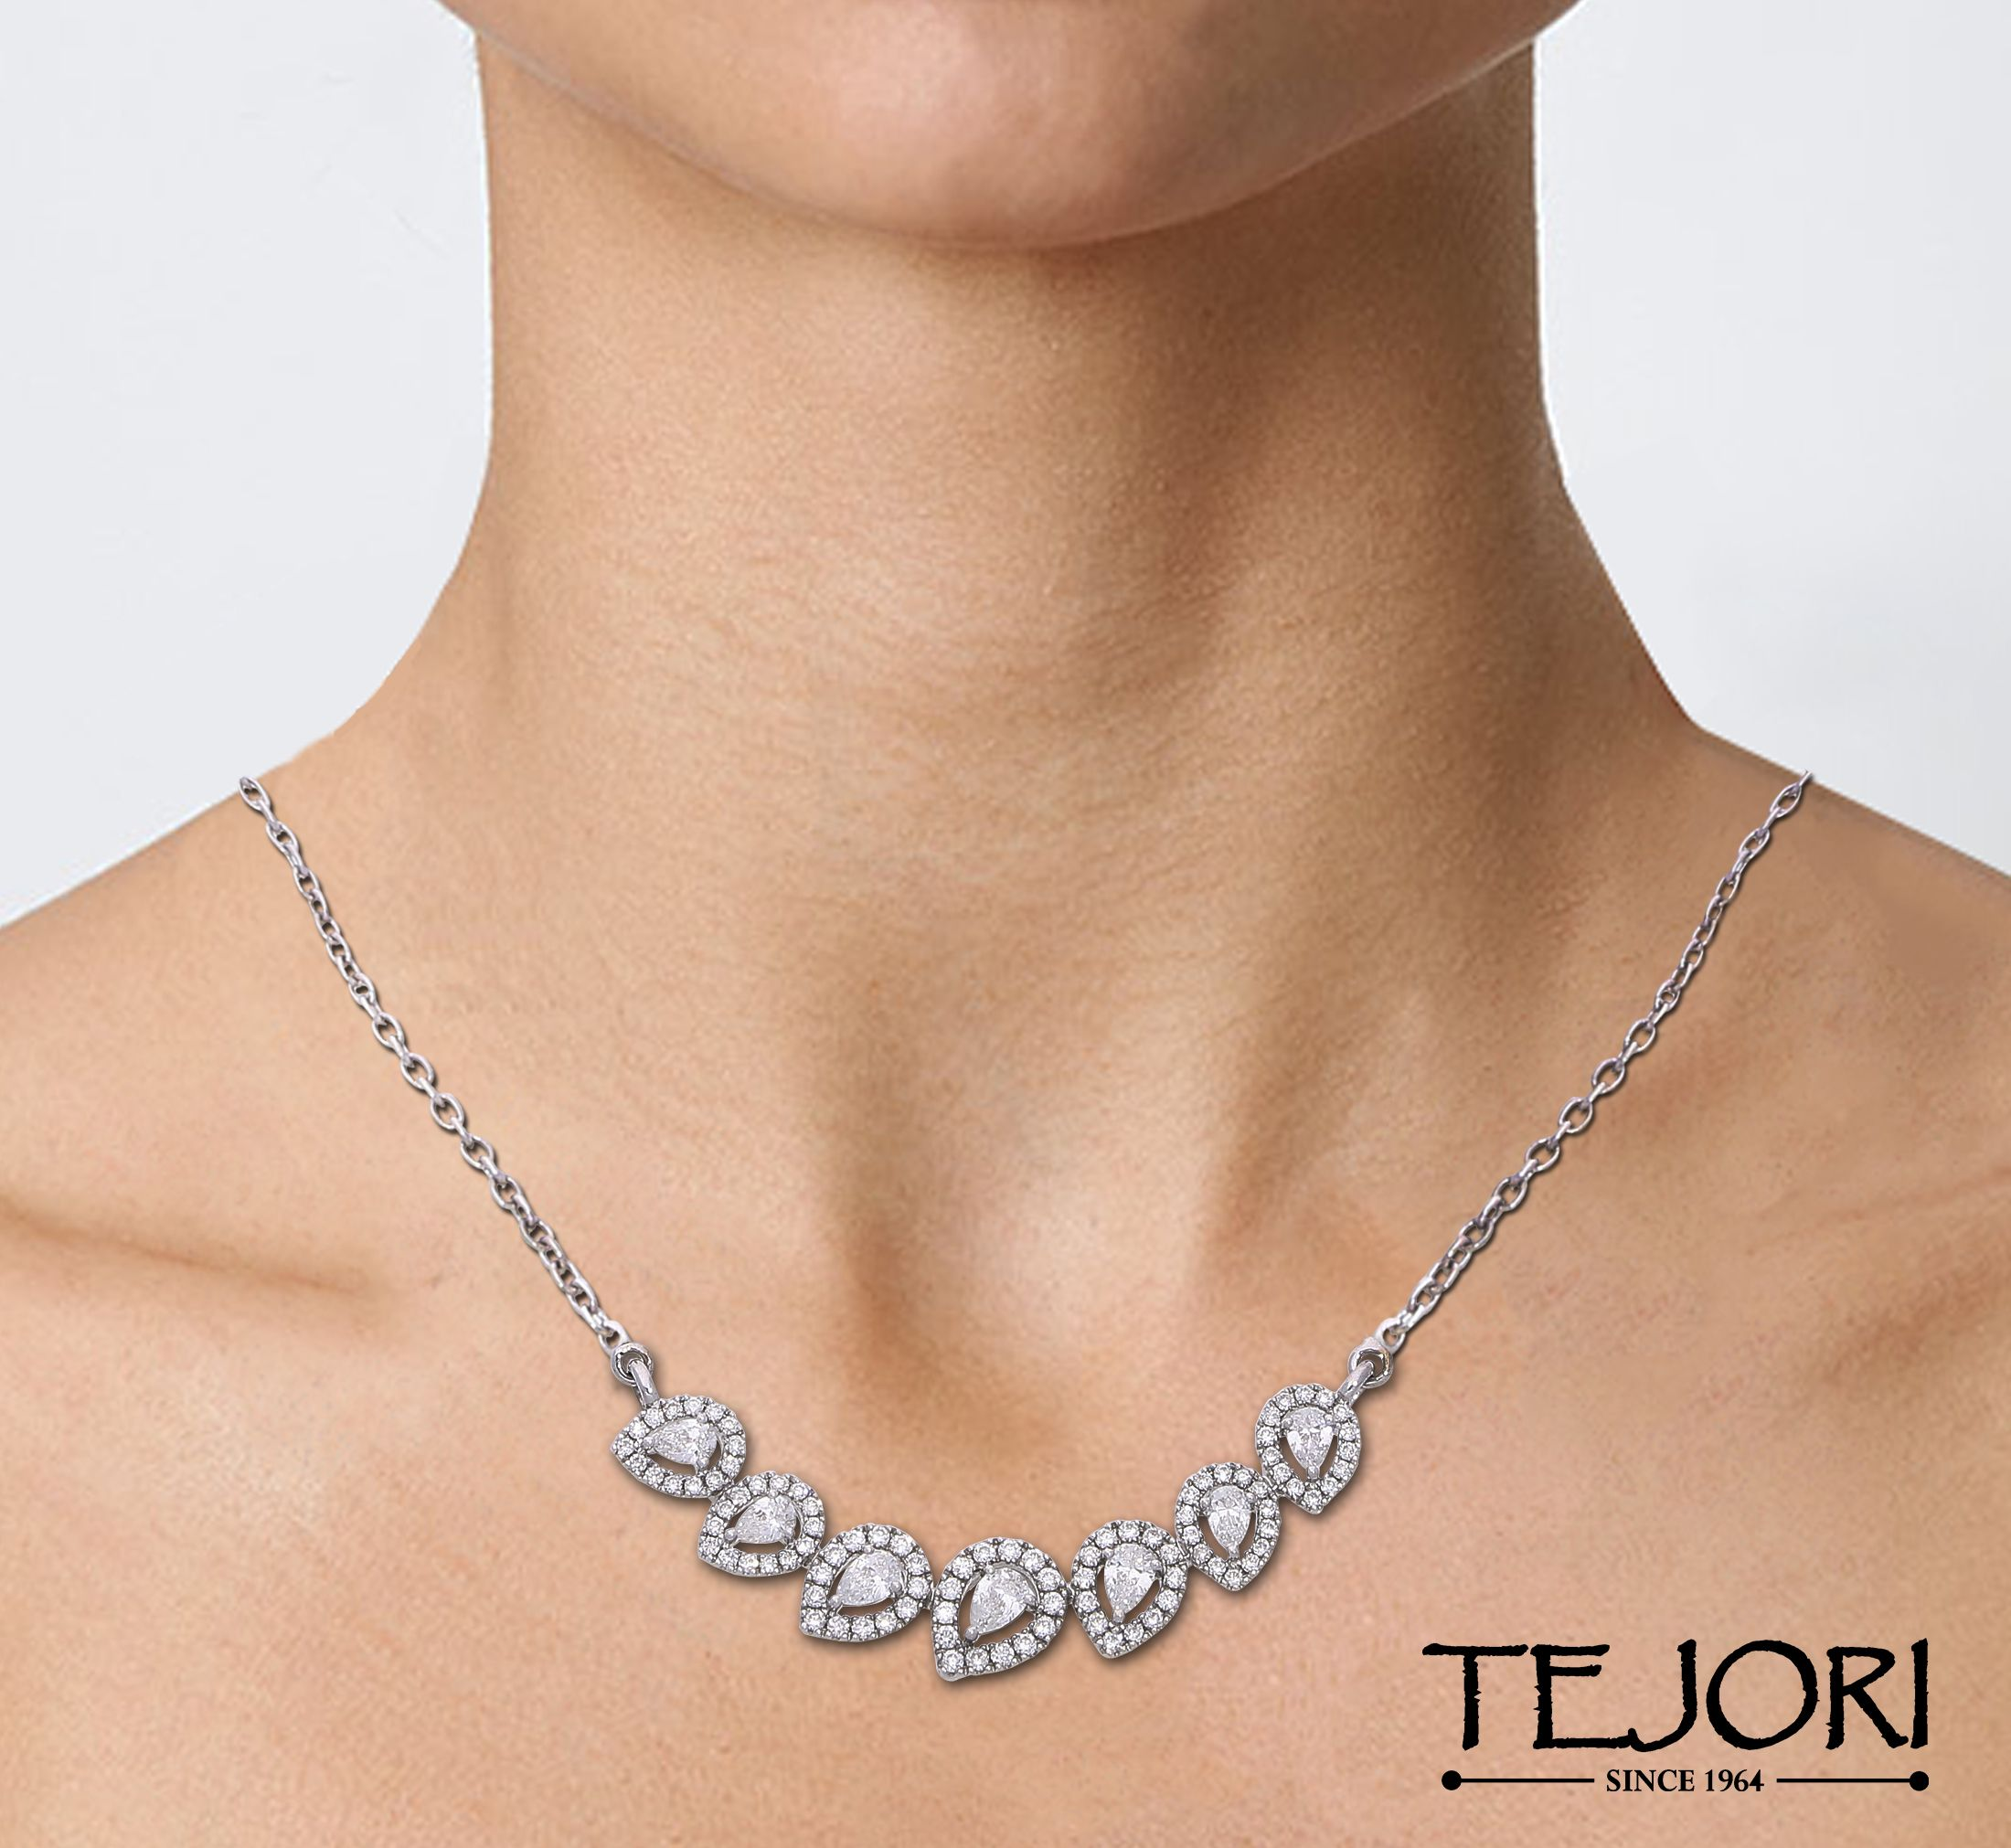 Pin by tejori since on jewellery collection pinterest